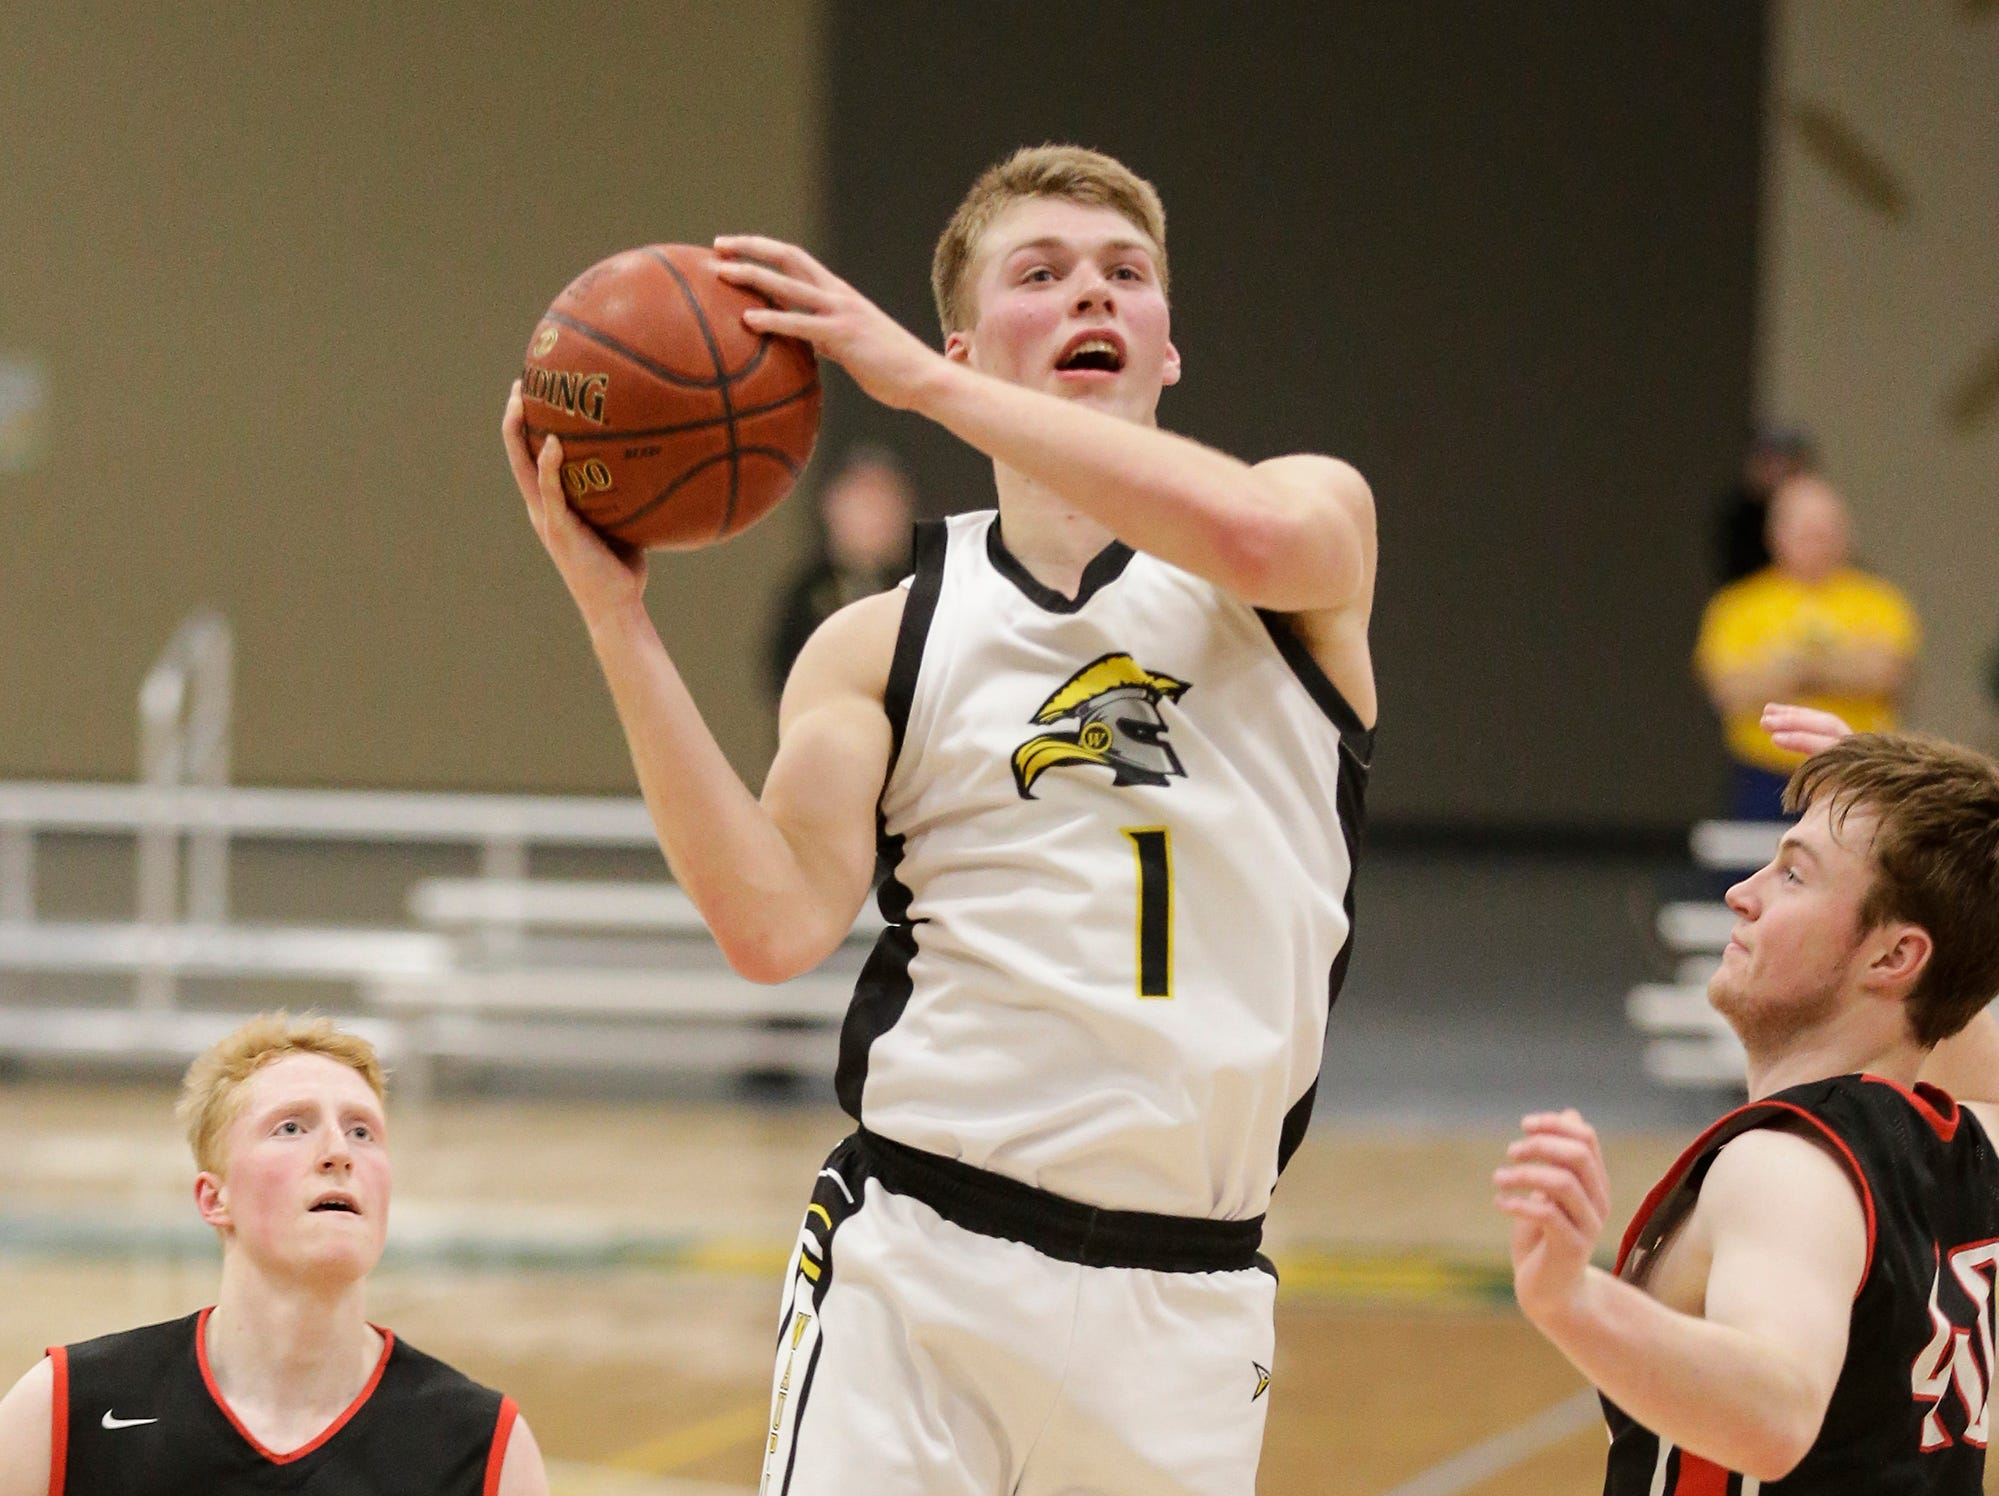 Waupun High School boys basketball's Marcus Domask (1) goes up for a shot between Columbus High School's Trent Casper (22) and Ben Emler (40) during their WIAA division 3 sectional semi-final game Thursday, March 7, 2019 in Beaver Dam, Wis. Waupun won the game 79-36. Doug Raflik/USA TODAY NETWORK-Wisconsin